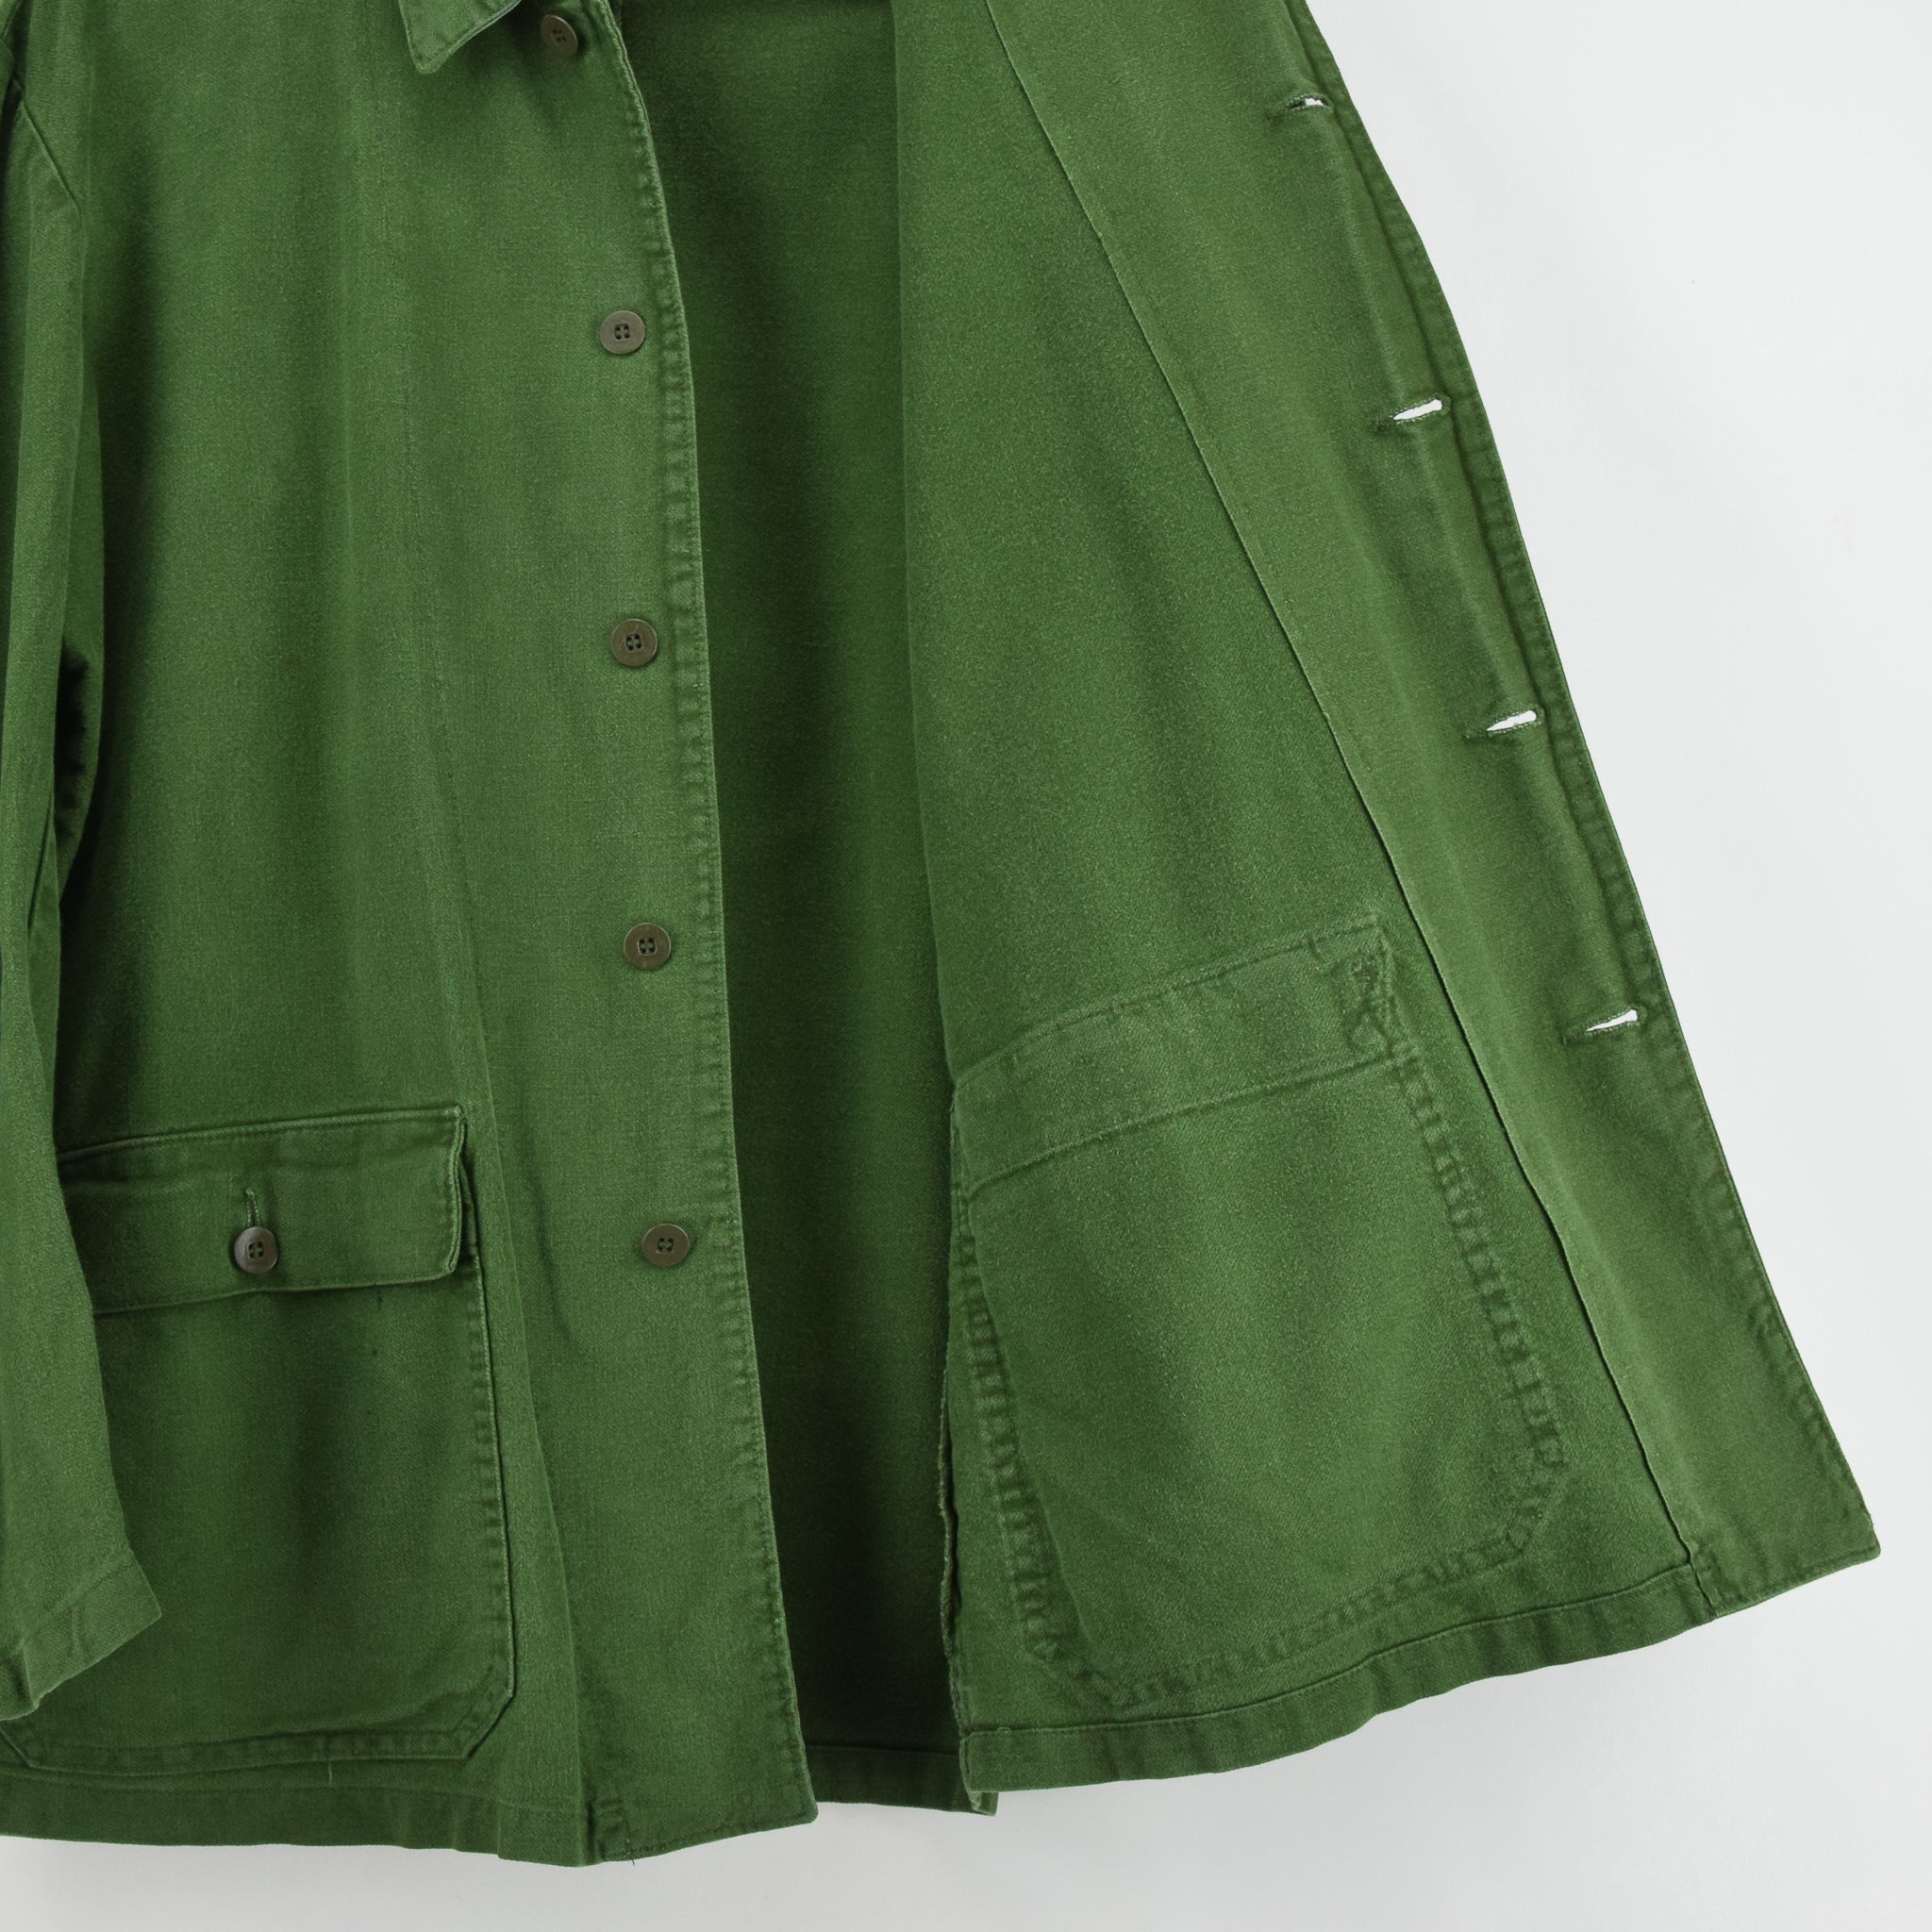 Vintage Swedish Worker Style Green Distressed Military Cotton Field Jacket M / L lining